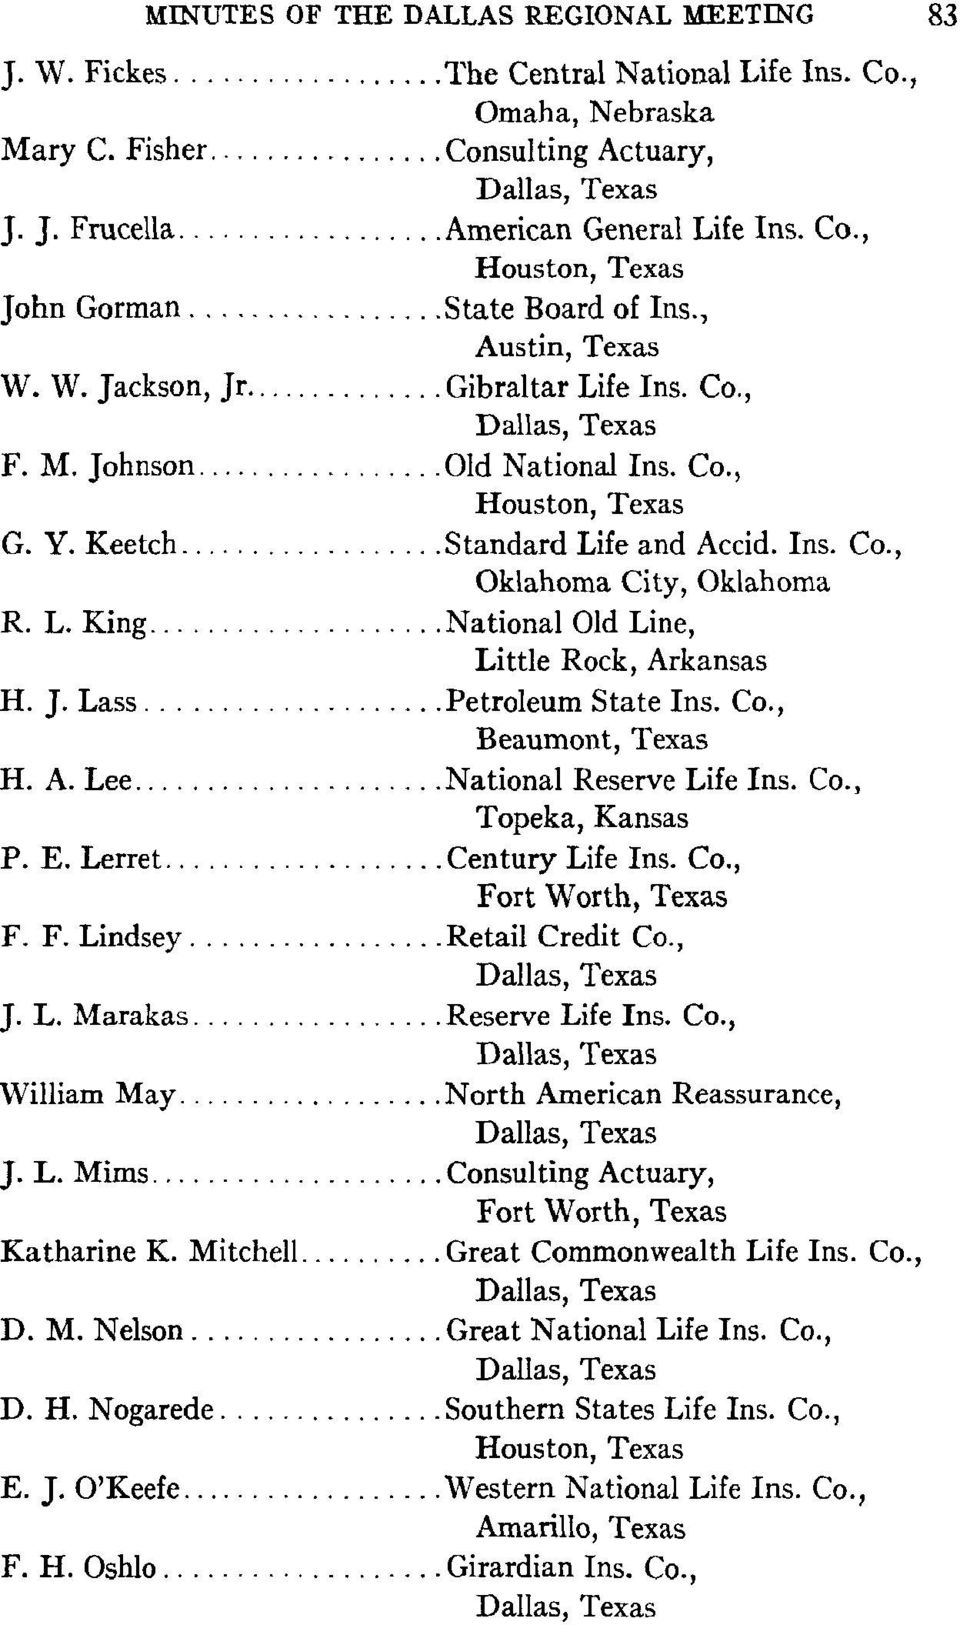 .. National Old Line, Little Rock, Arkansas H. J. Lass... Petroleum State Ins. Co., Beaumont, Texas H. A. Lee... National Reserve Life Ins. Co., Topeka, Kansas P. E. Lerret... Century Life Ins. Co., Fort Worth, Texas F.